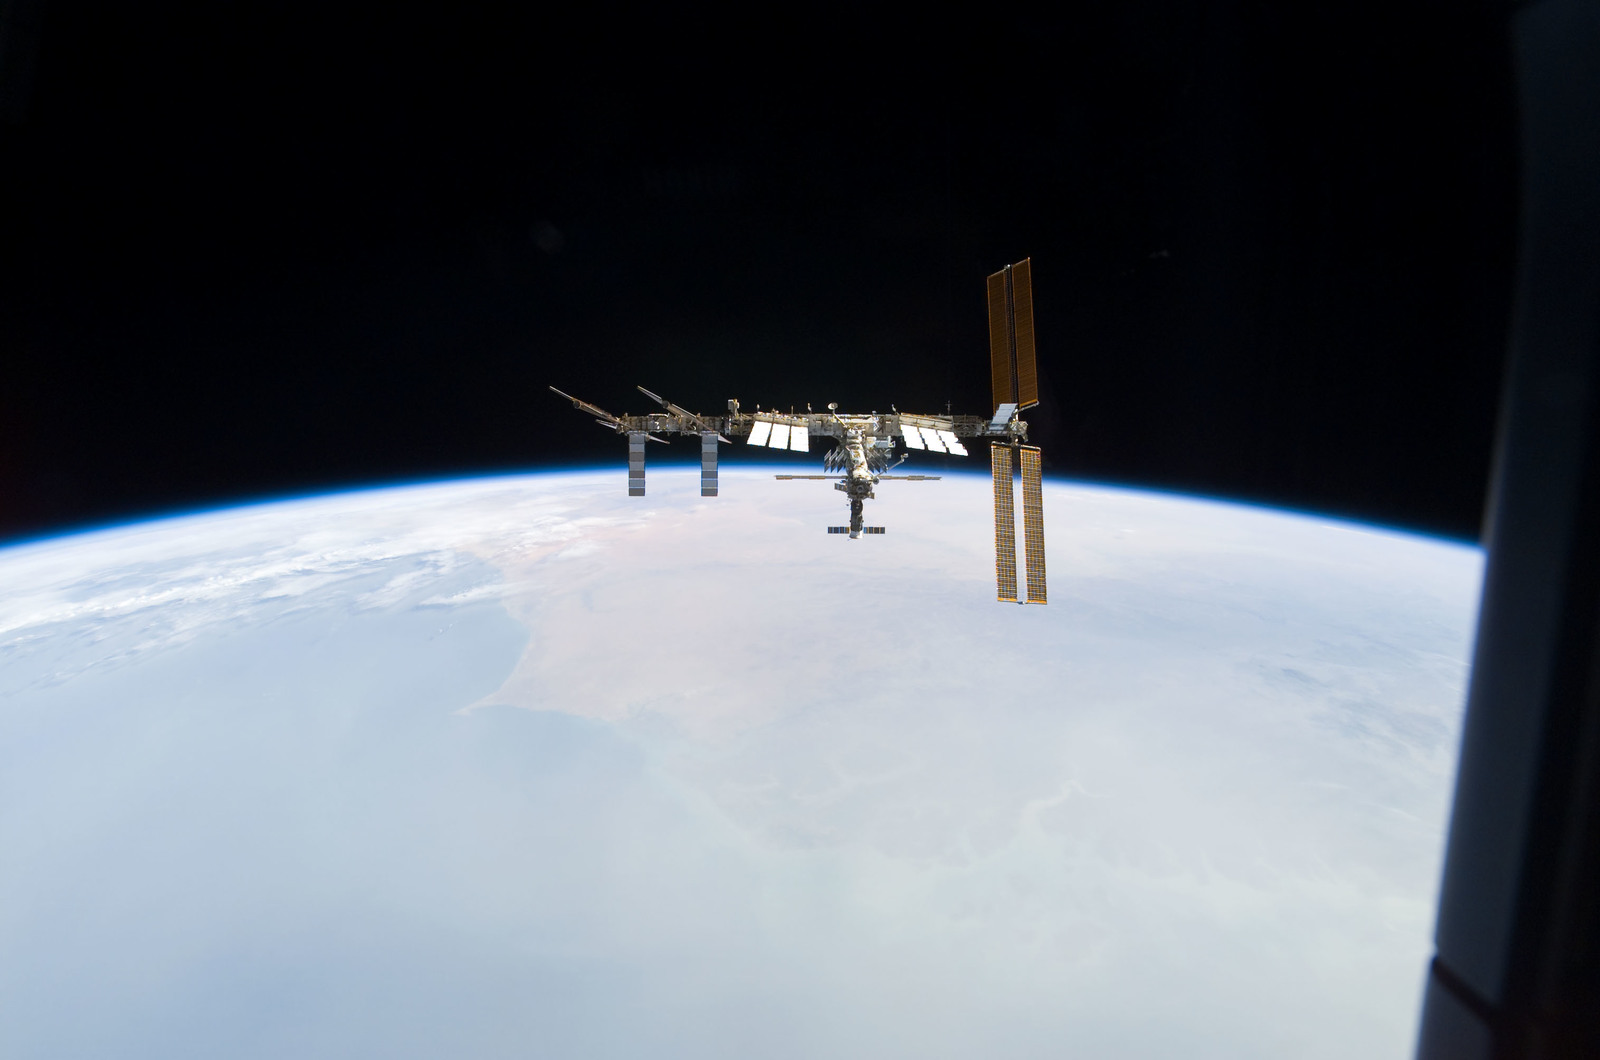 S122E010969 - STS-122 - View of ISS after STS-122 Undocking